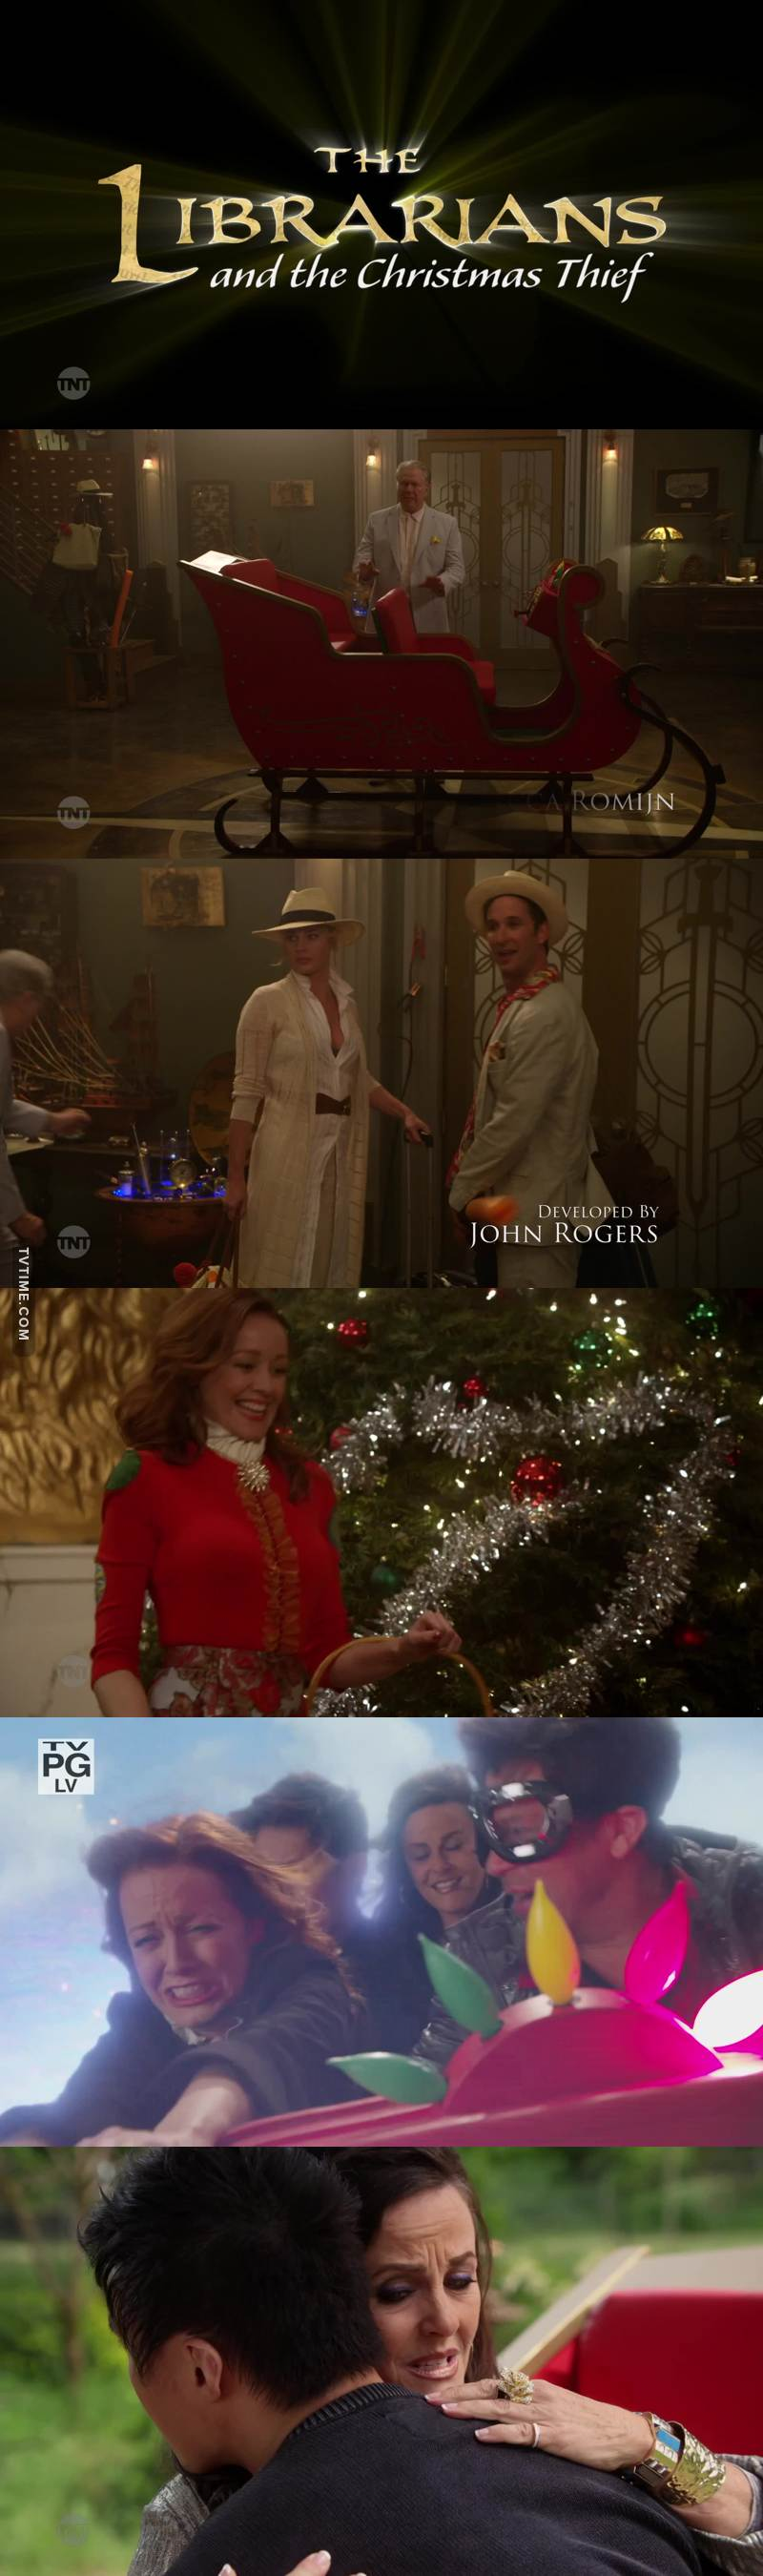 Wonderful episode! Full of Christmas cheer! I loved the scene when they were flying with the sleigh and the one when Ezekiel and his mom gave back the stolen gifts!